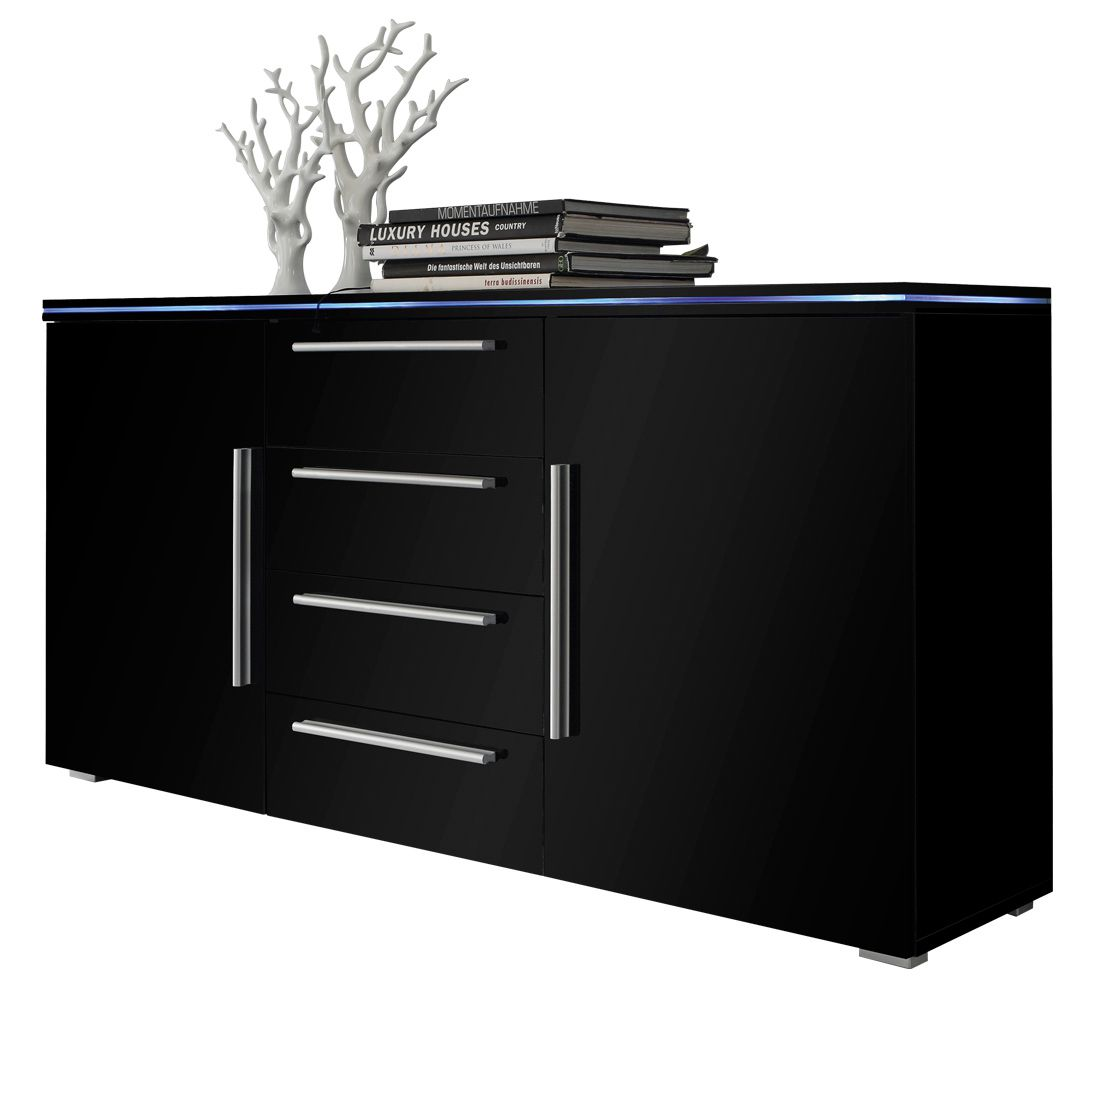 schwarz hochglanz vitrine preisvergleich die besten angebote online kaufen. Black Bedroom Furniture Sets. Home Design Ideas